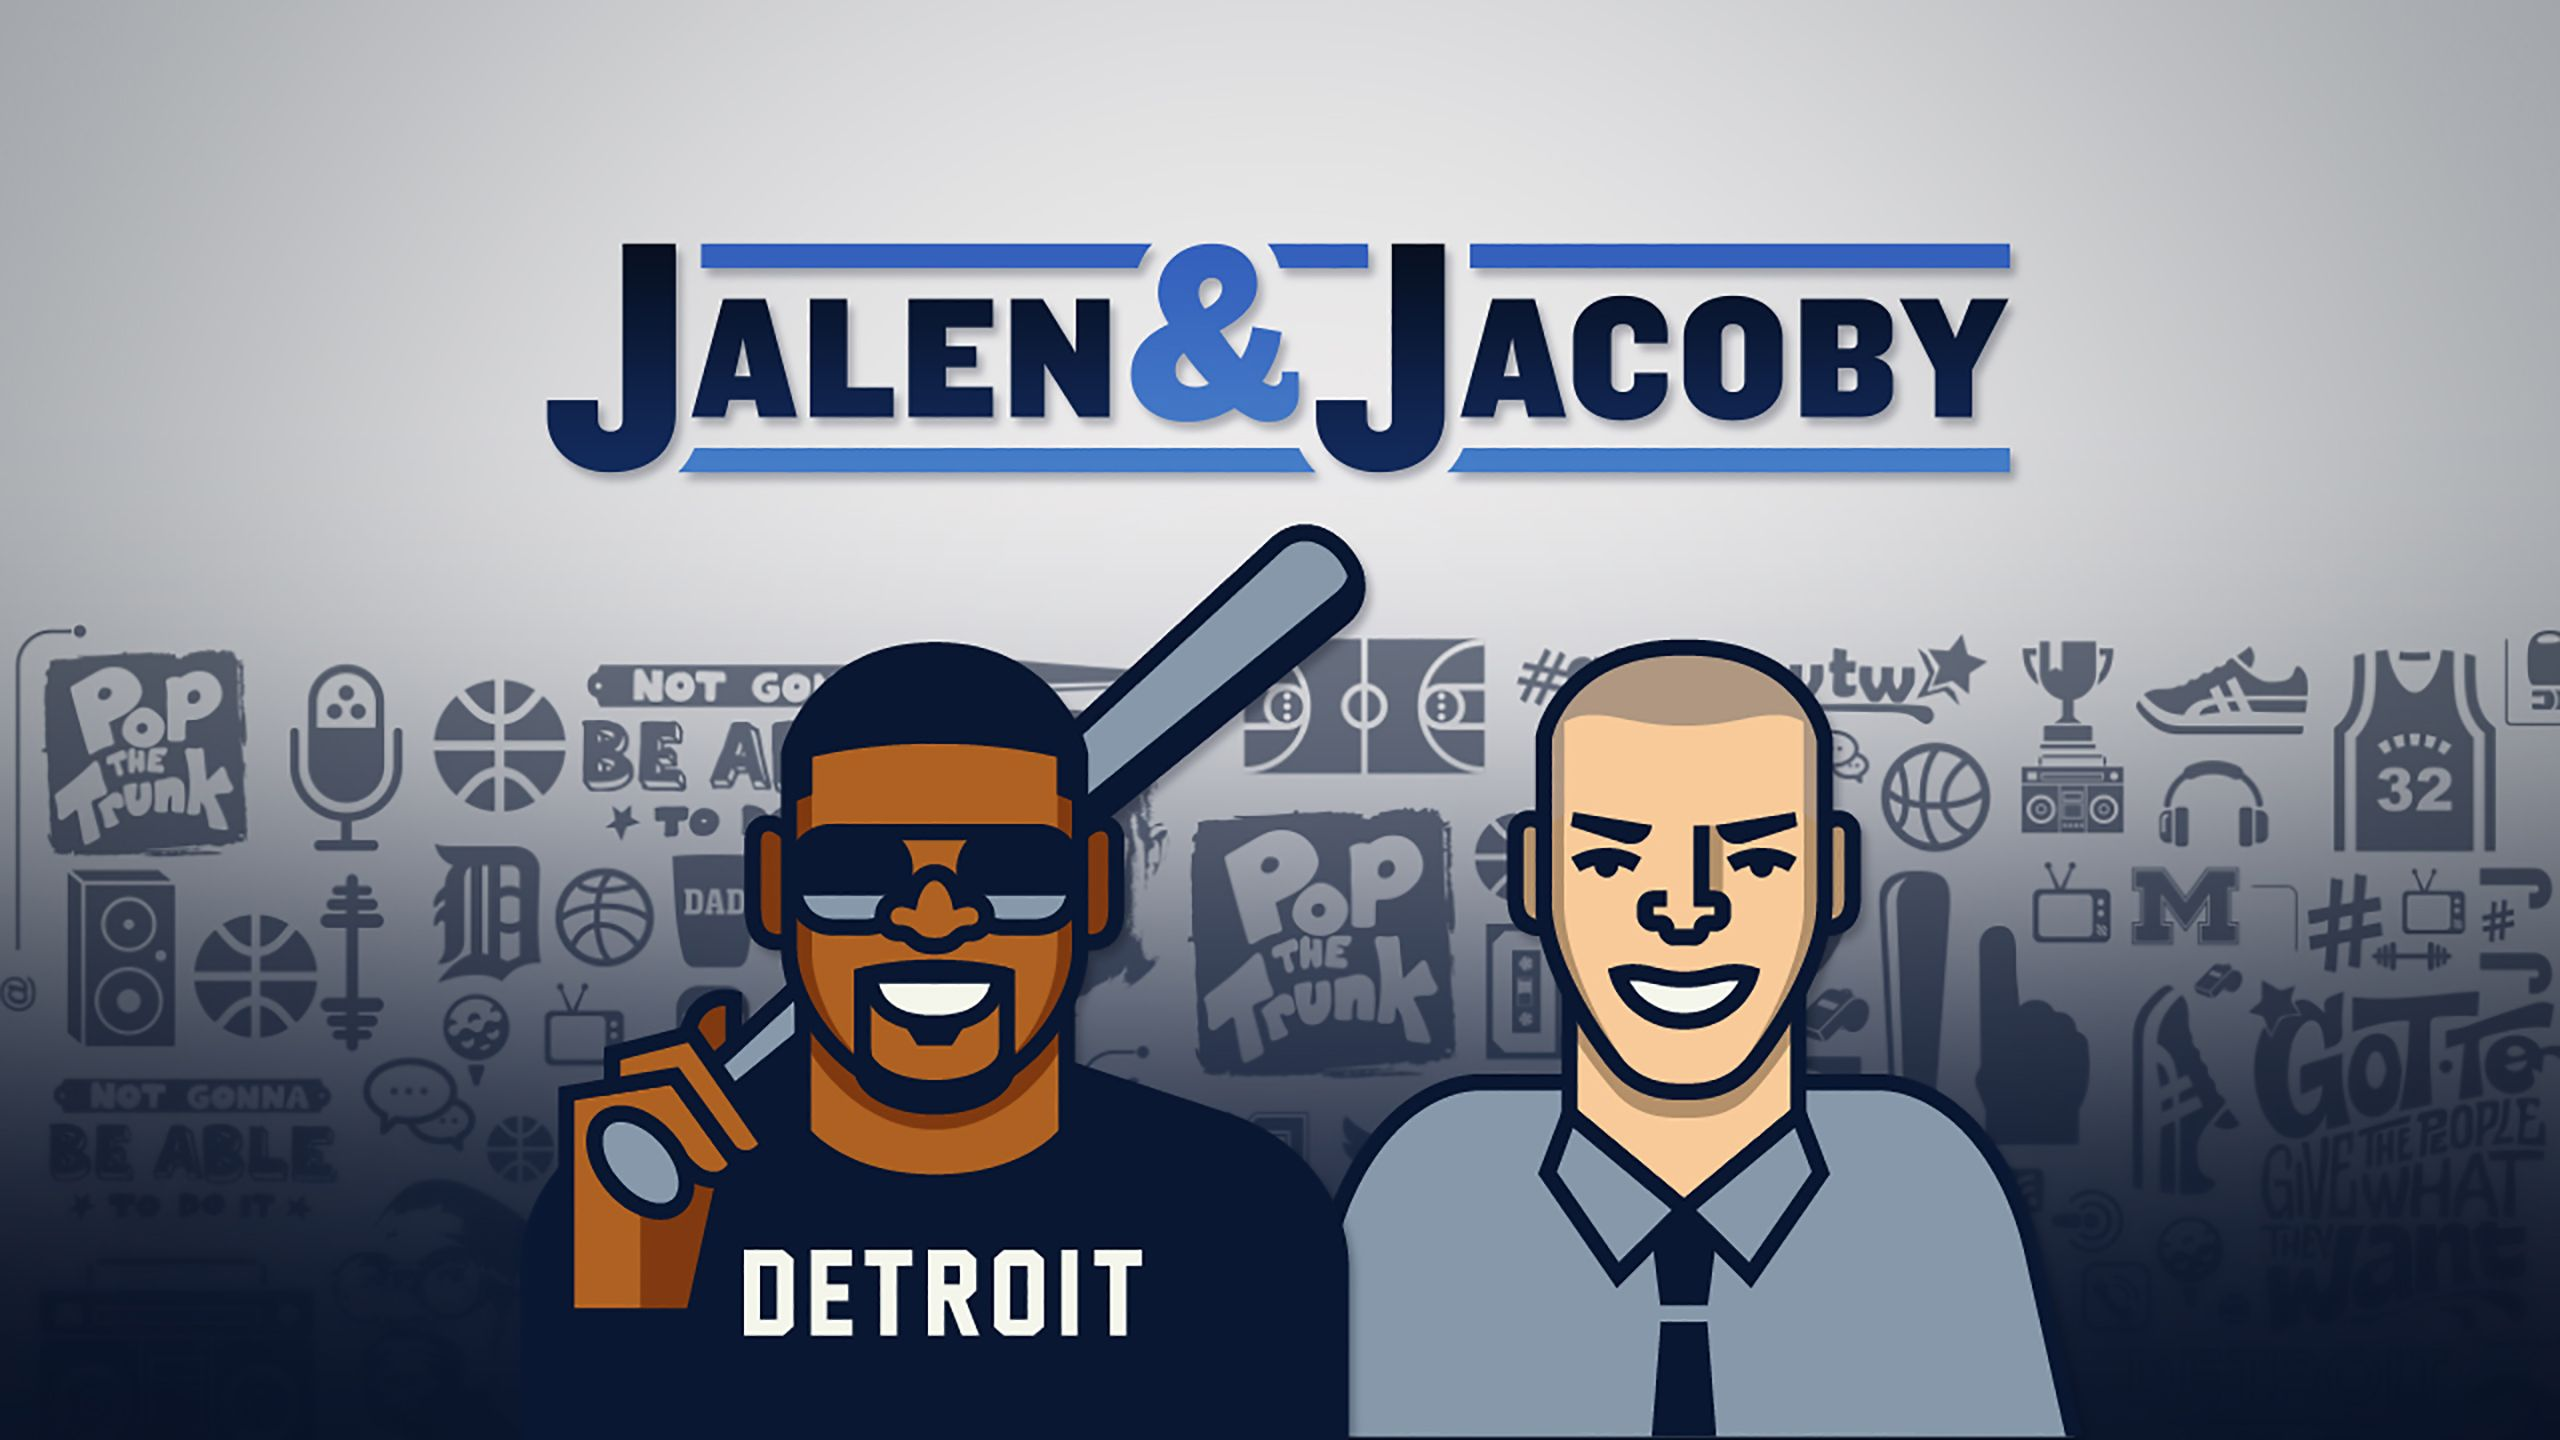 Wed, 12/13 - Jalen & Jacoby